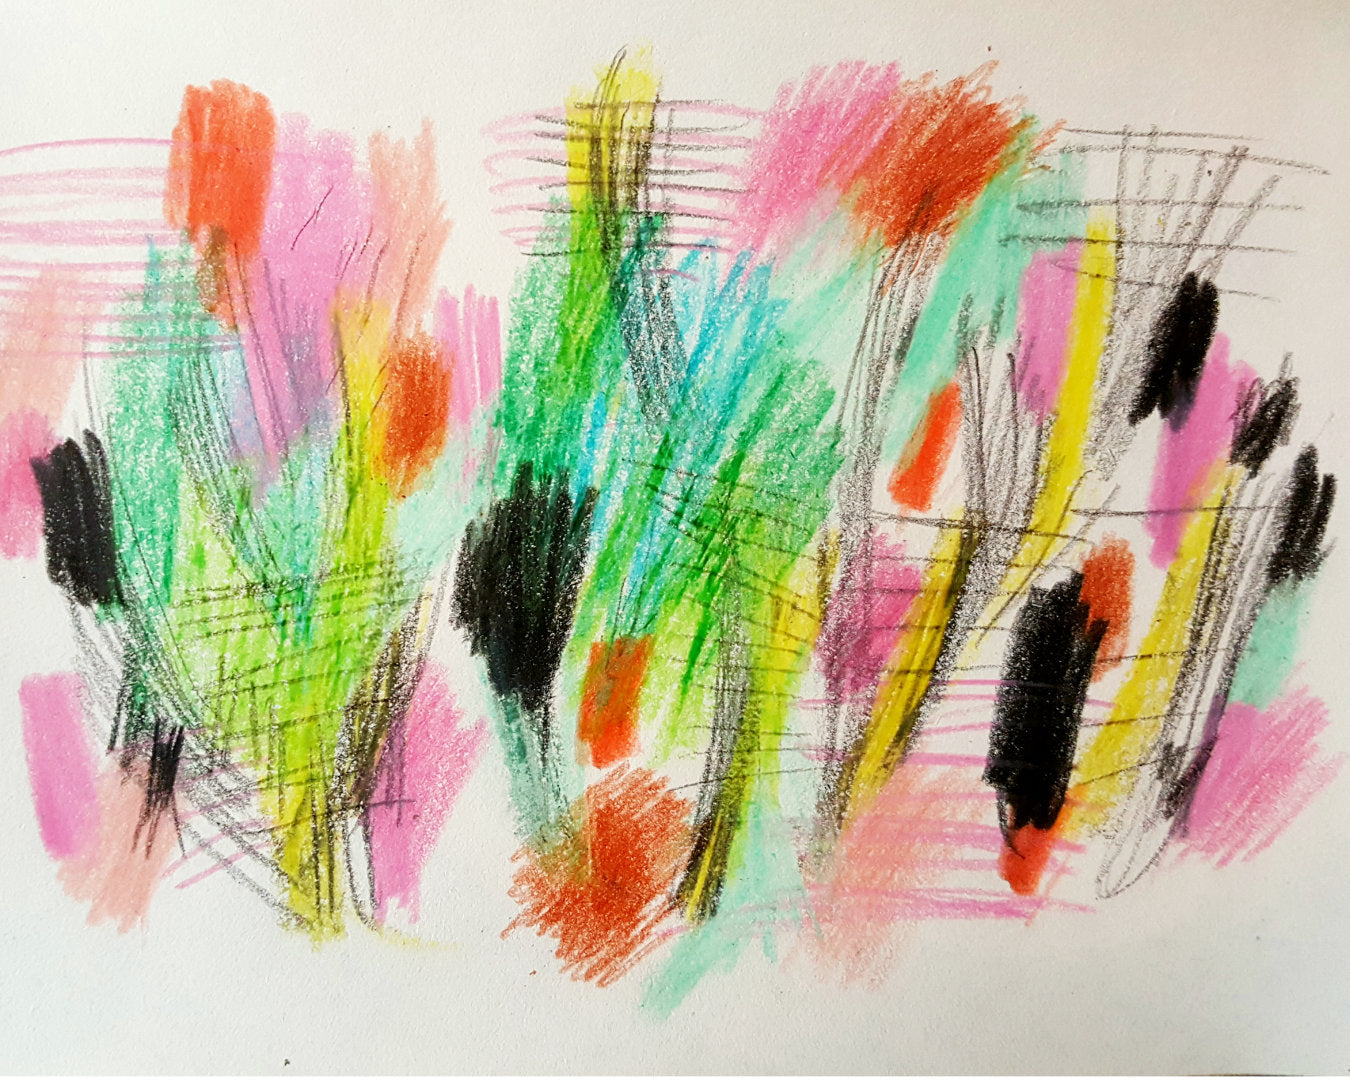 crayon doodles in sketchbook by Julia Laing